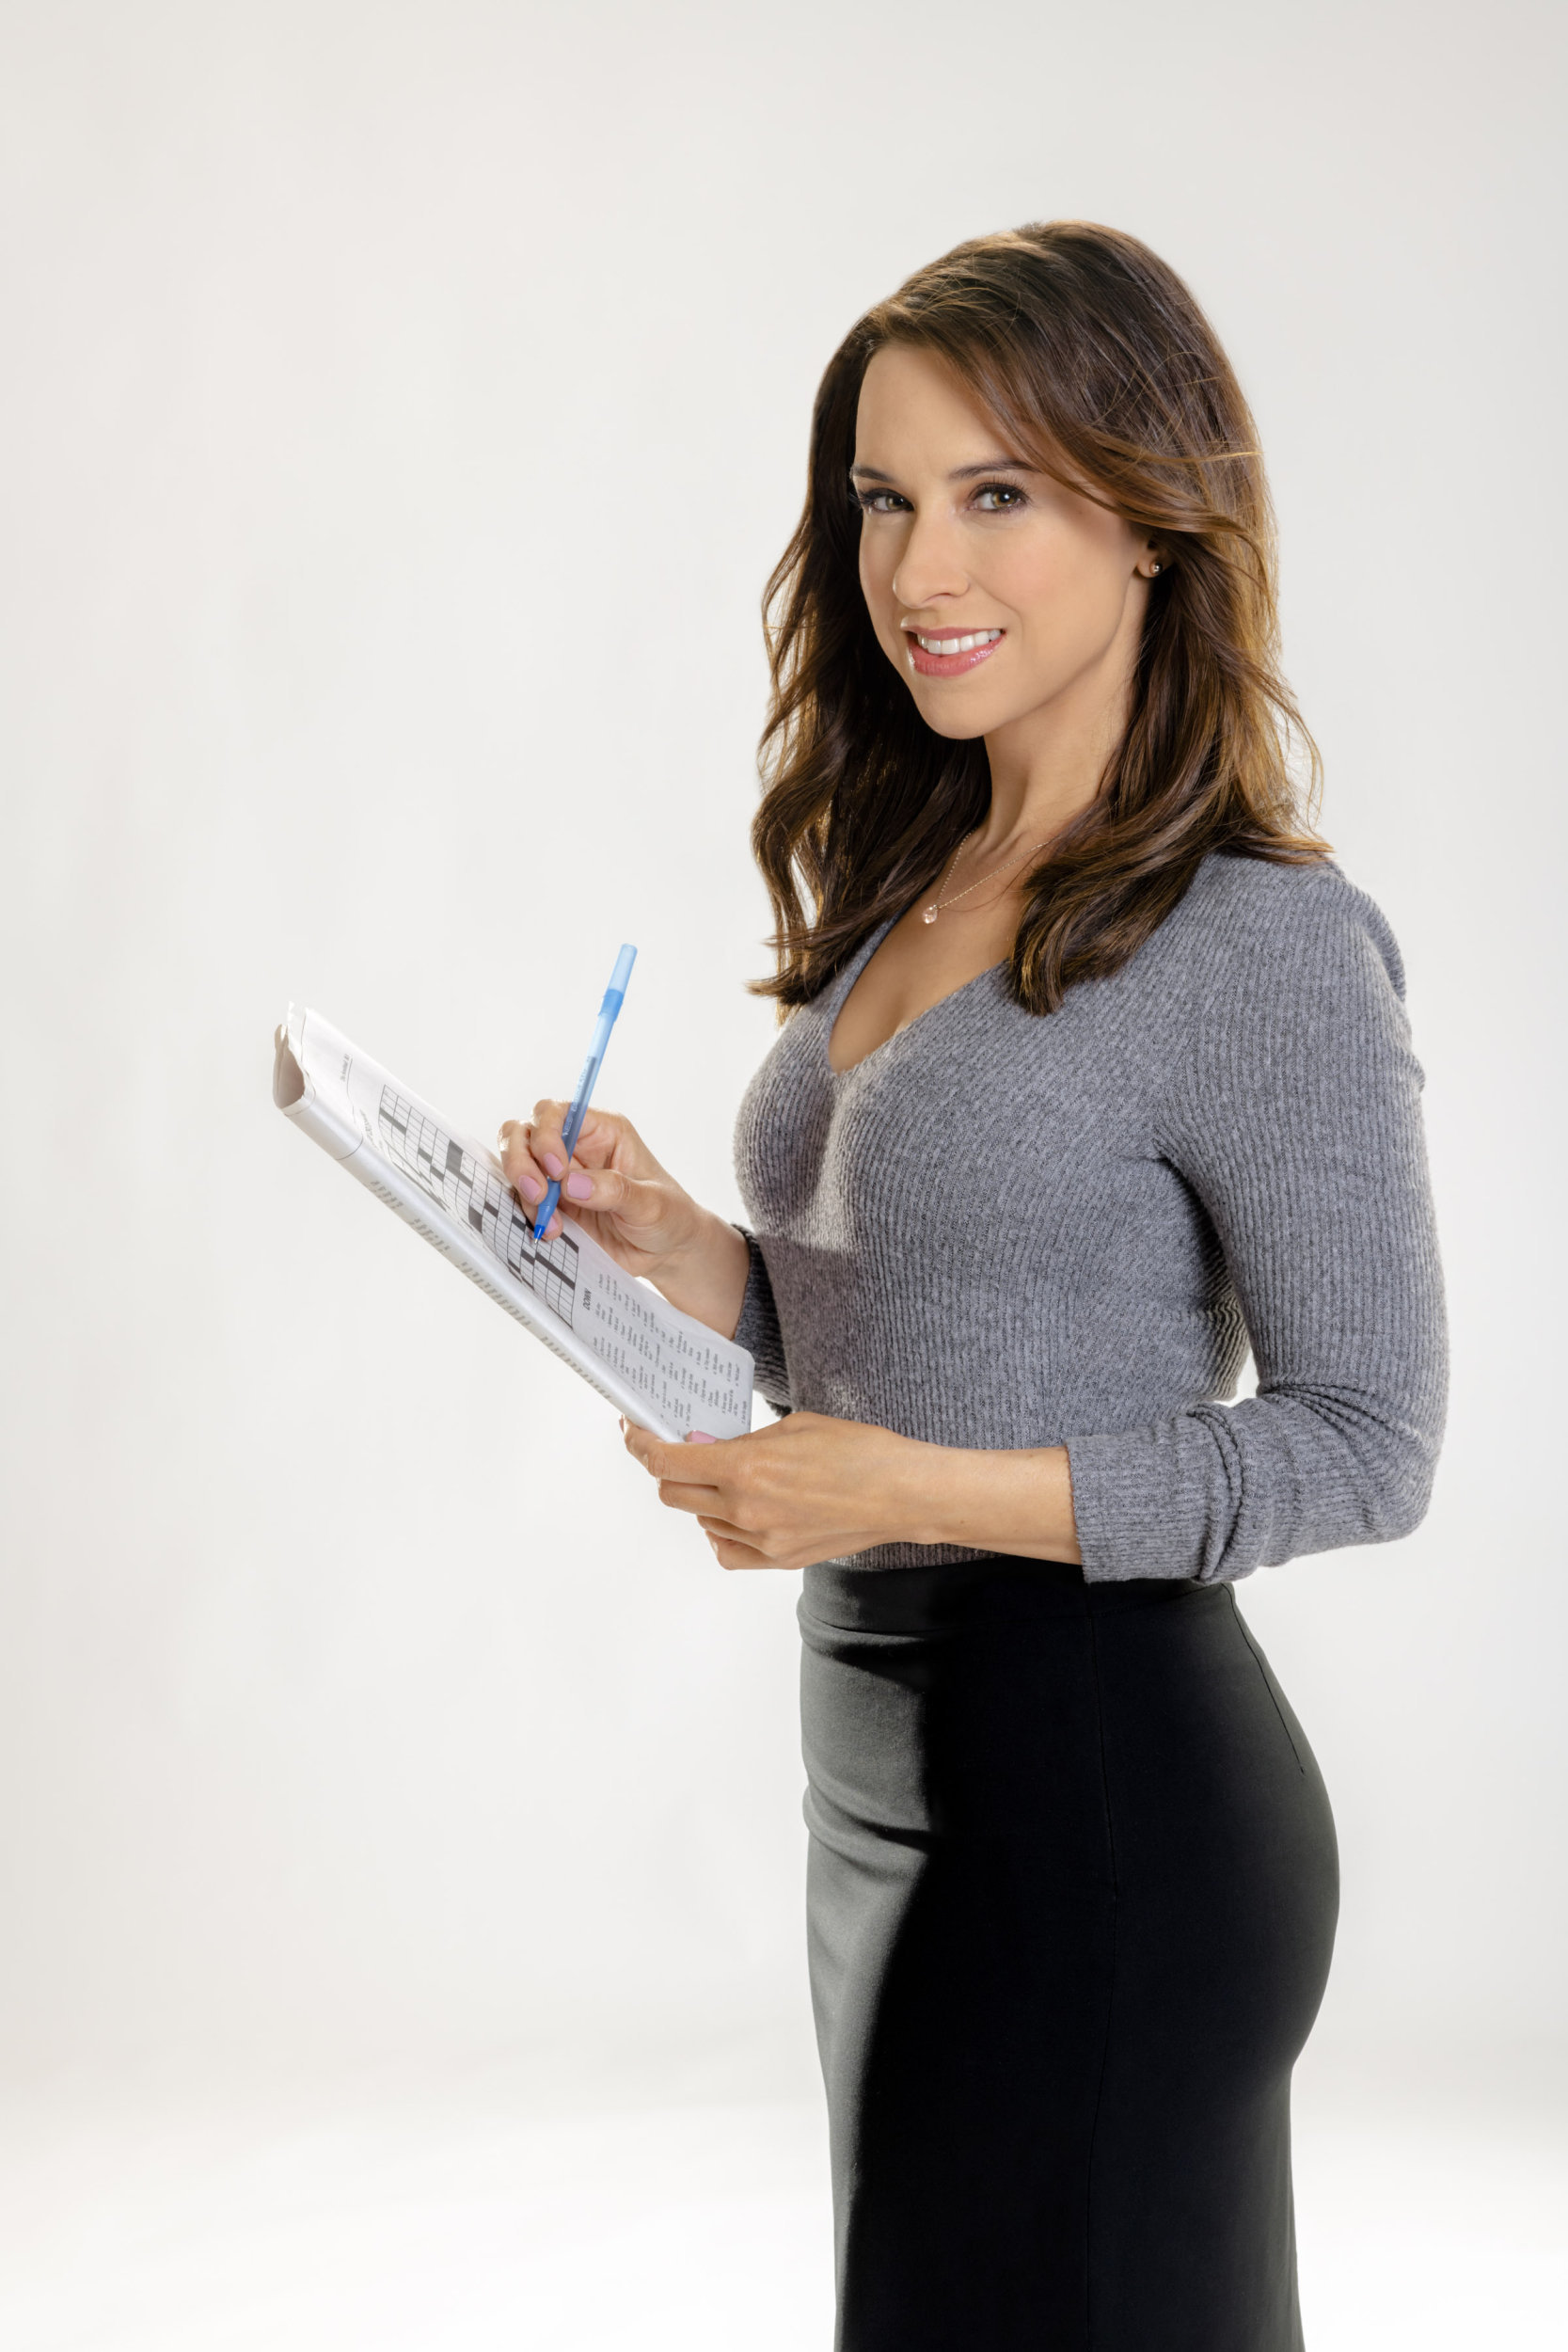 Lacey Chabert as Tess Harper on Crossword Mysteries ...